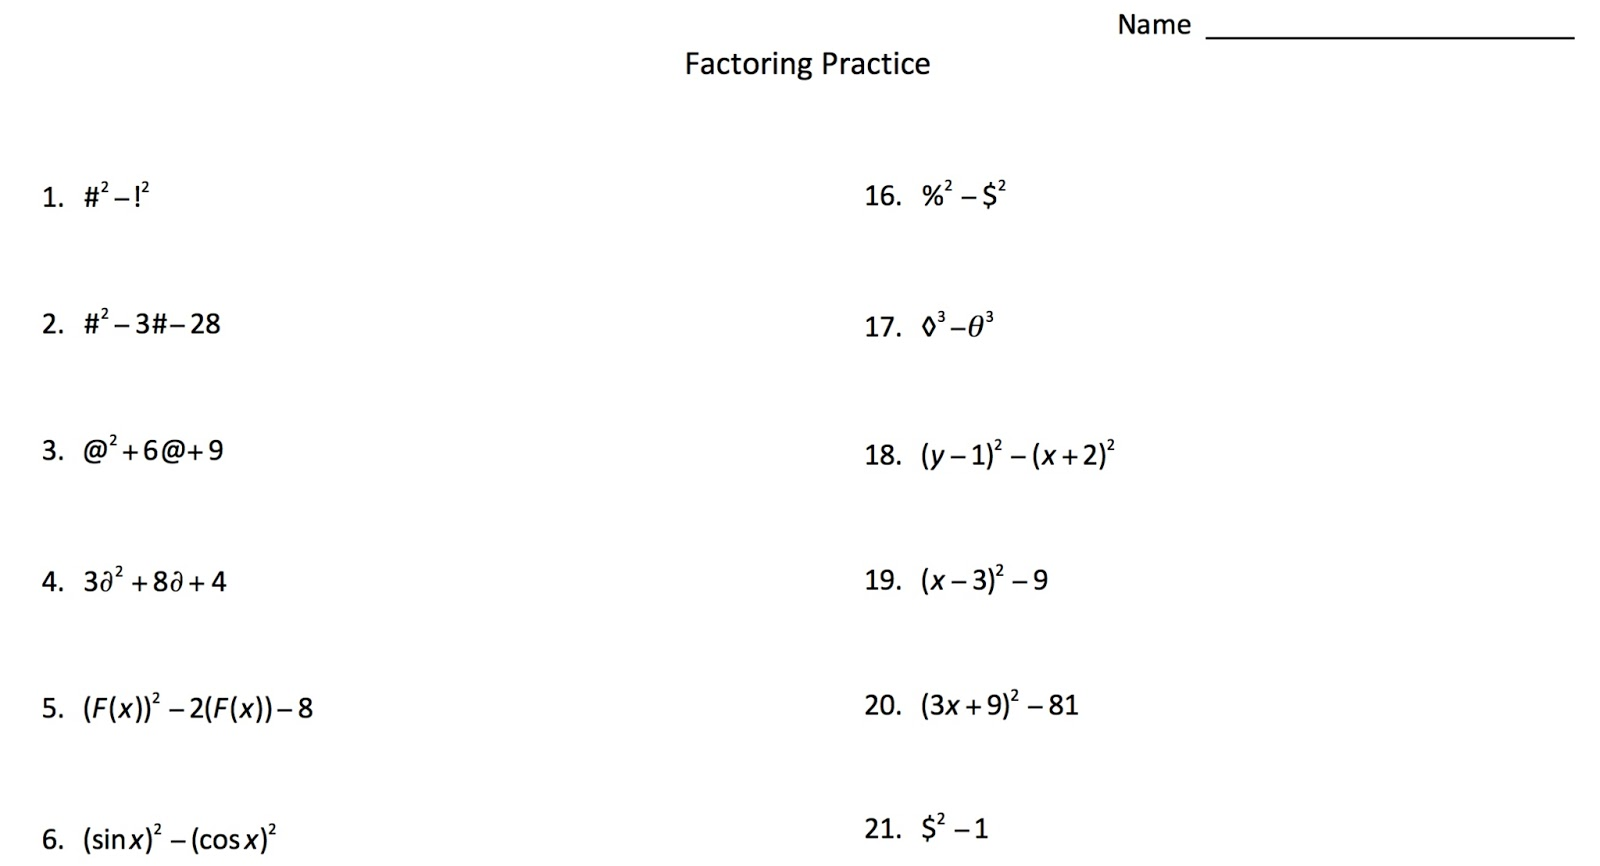 worksheet Factoring Ax2 Bx C Worksheet Answers factoring ax2 bx c worksheet answers abitlikethis algebra 1 worksheets as well practice worksheet